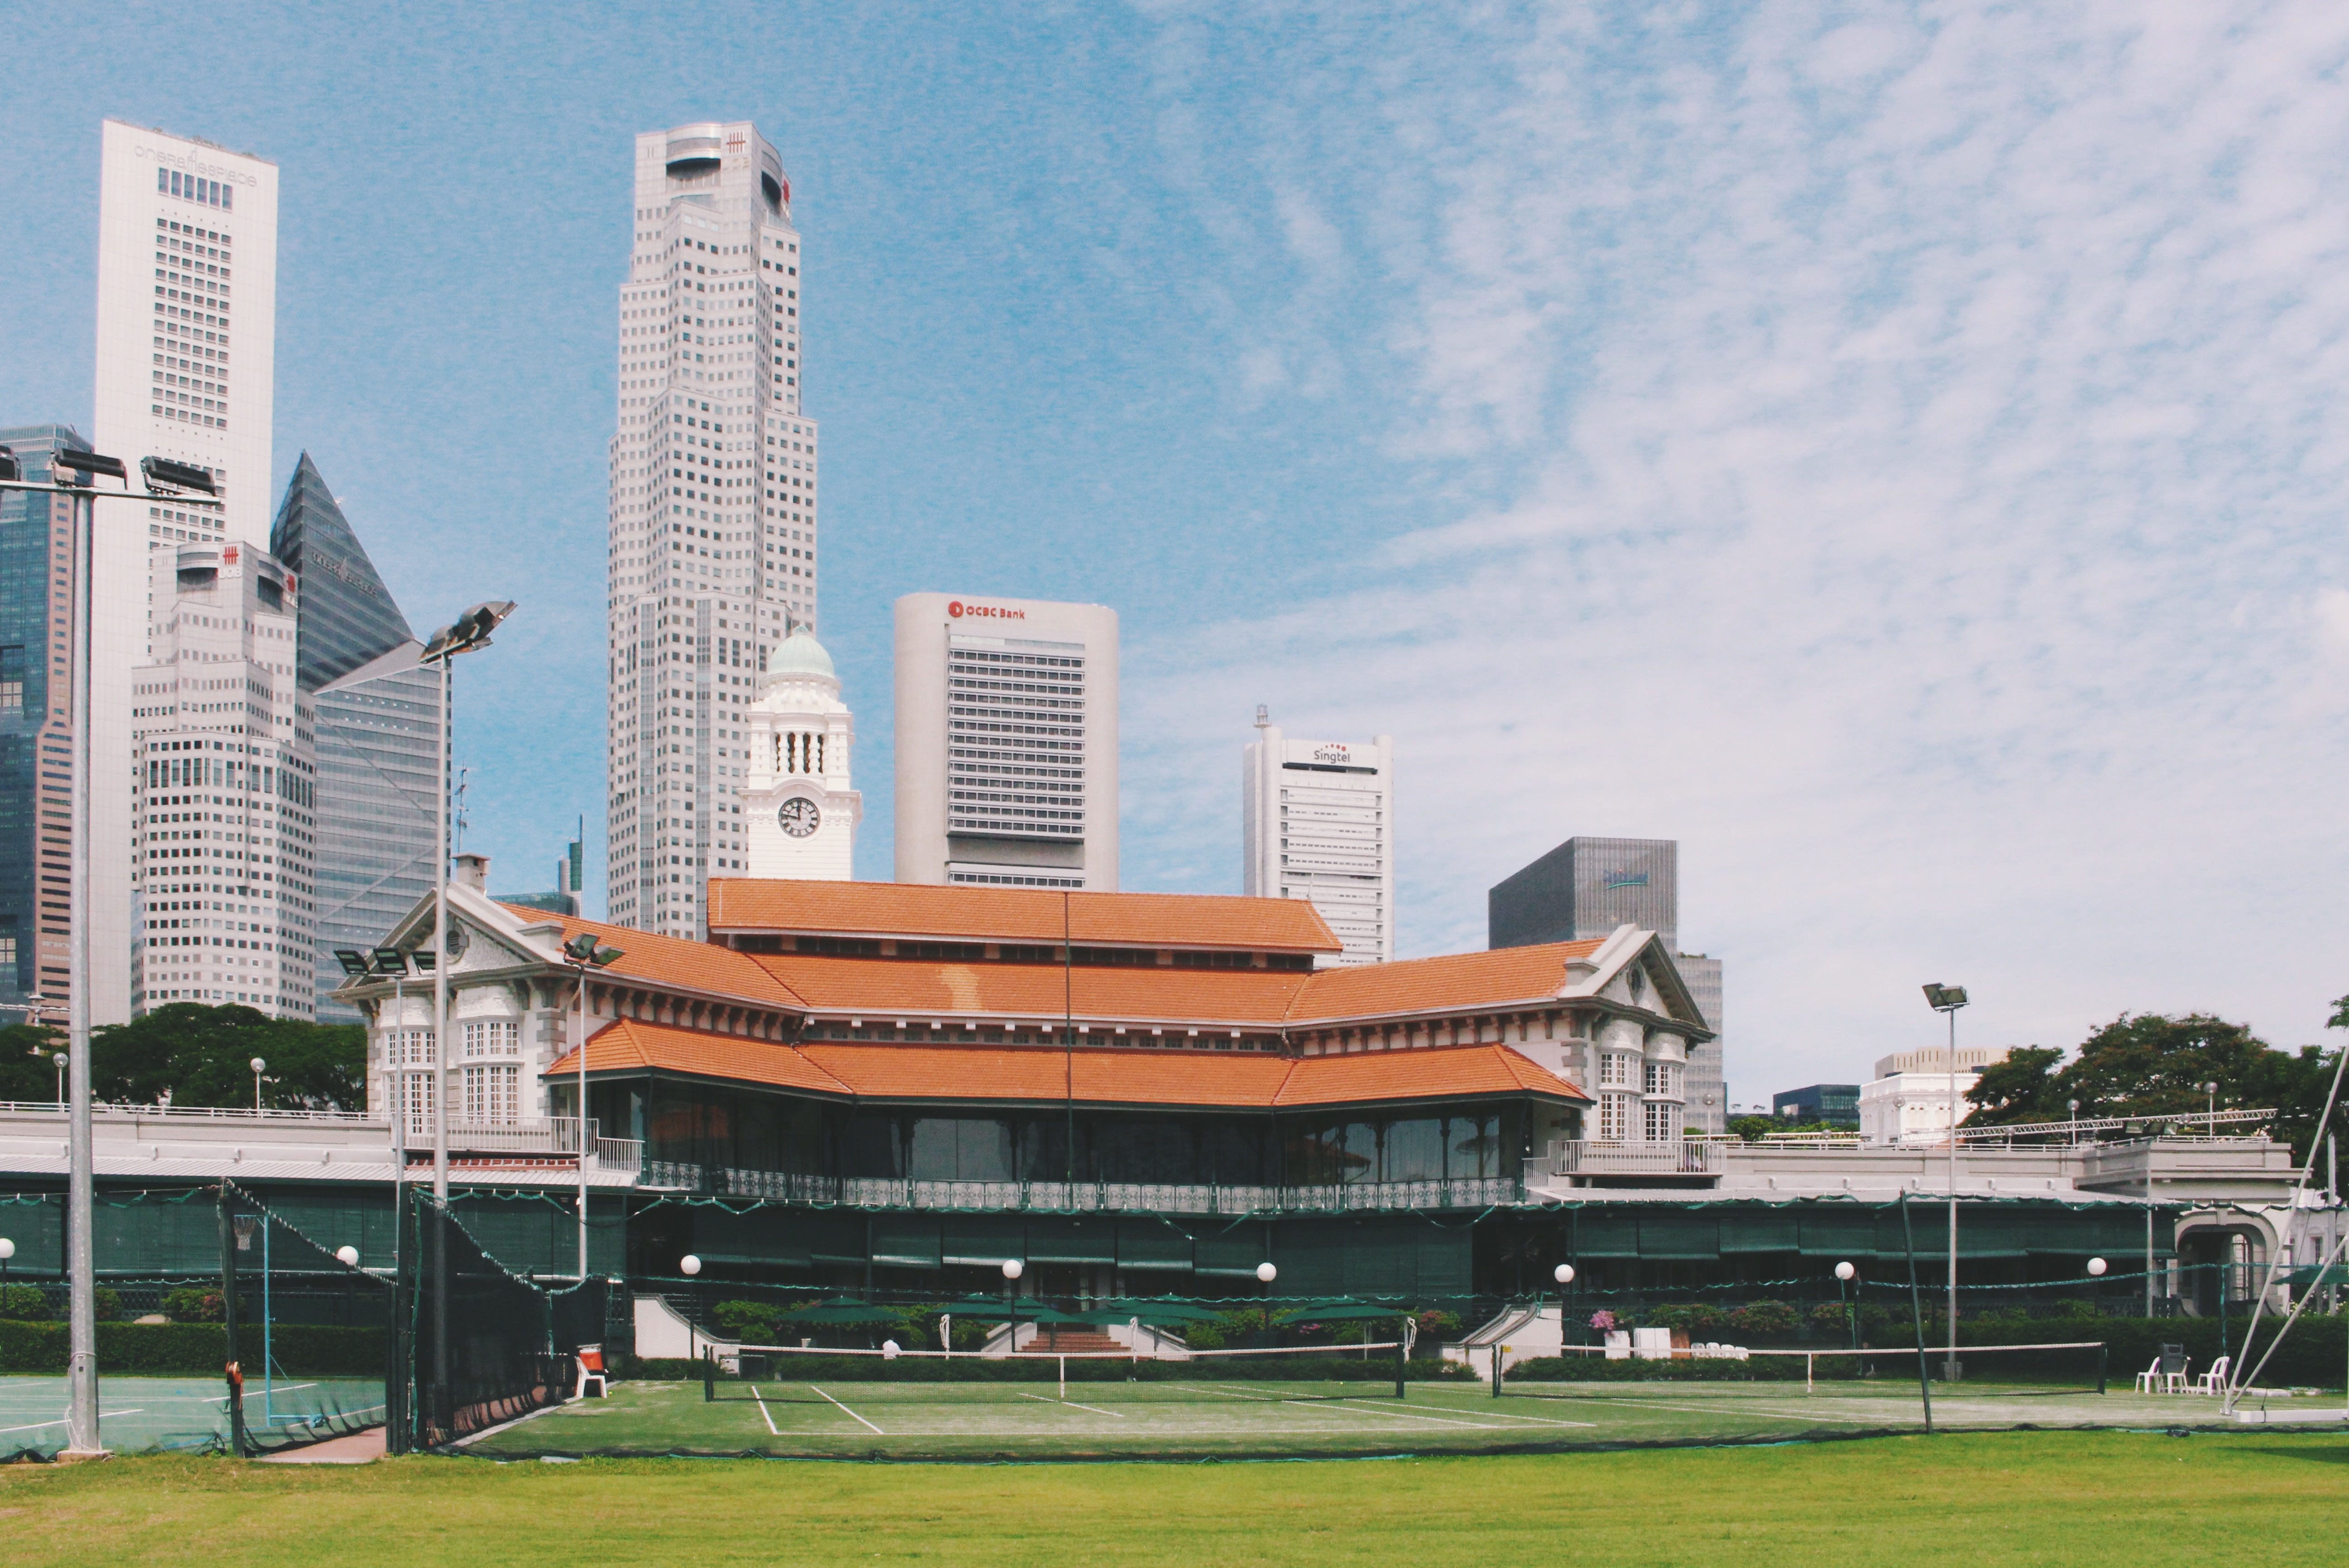 The Padang Cricket Ground will host the SCC T20.